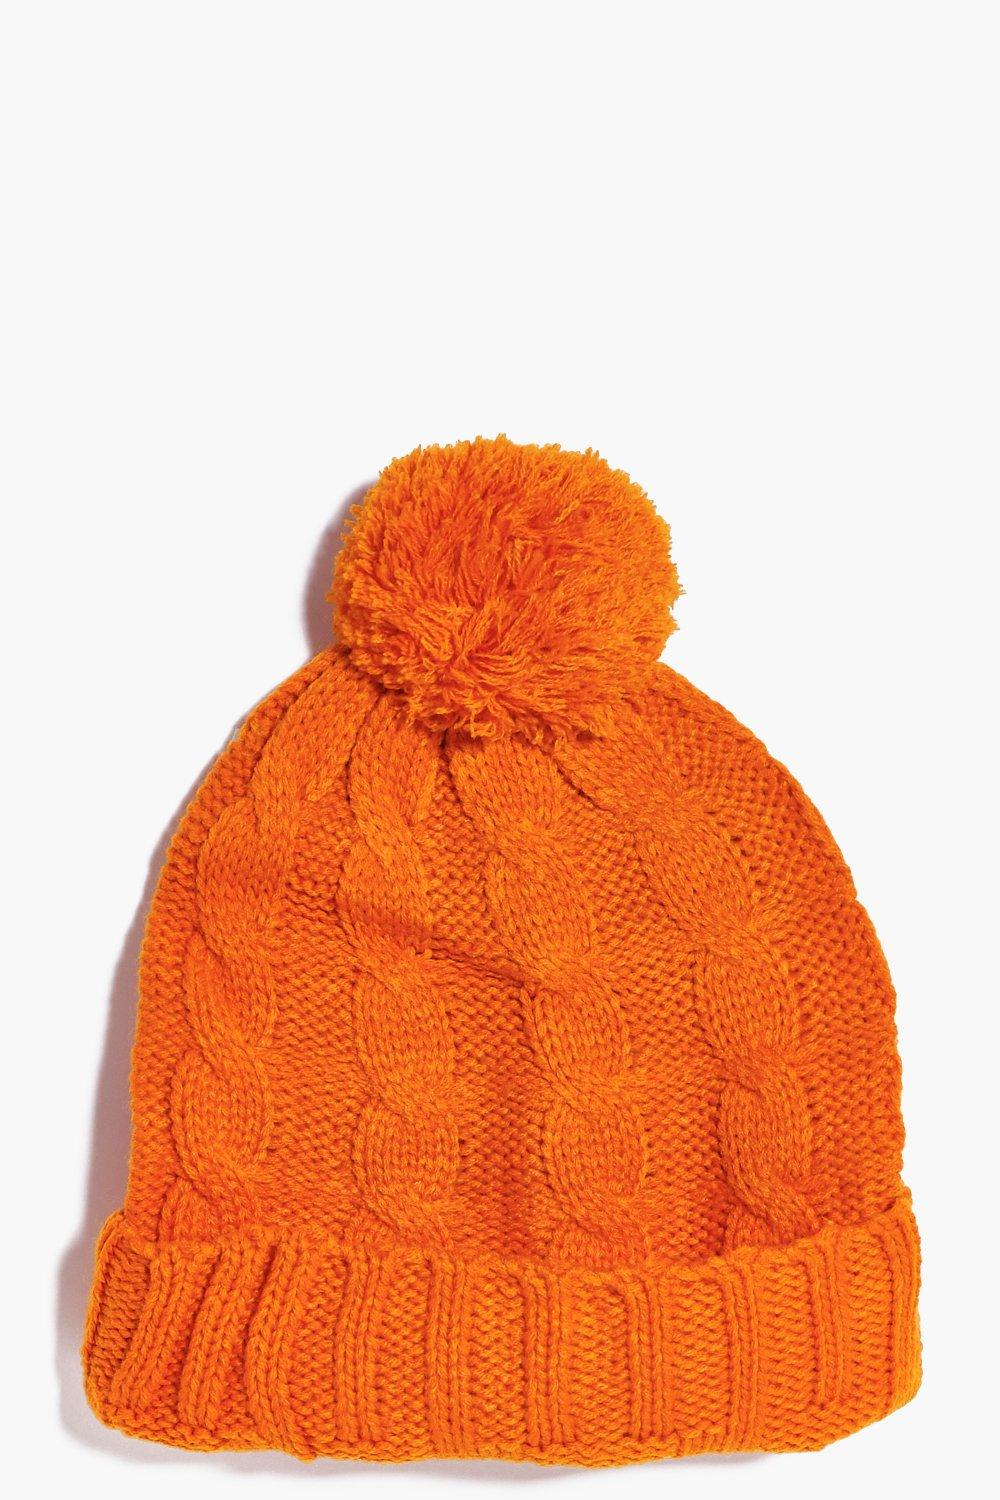 Pom Pom Hat - orange - Girls Pom Pom Hat - orange